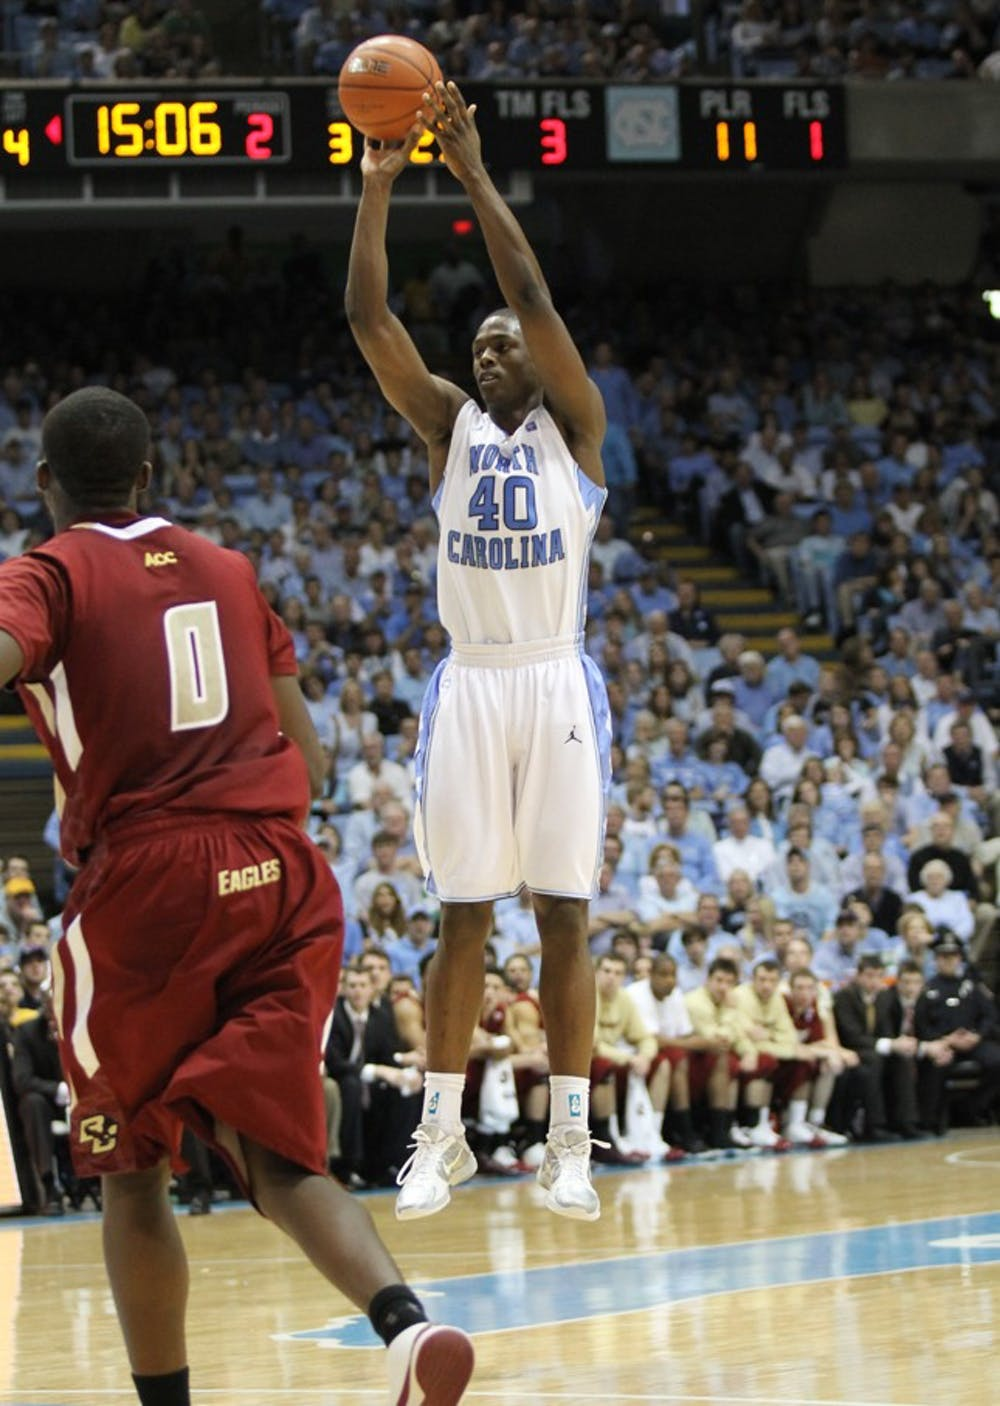 the latest 1e6ef 53c61 Wanted: A complete game from UNC's Harrison Barnes - The ...